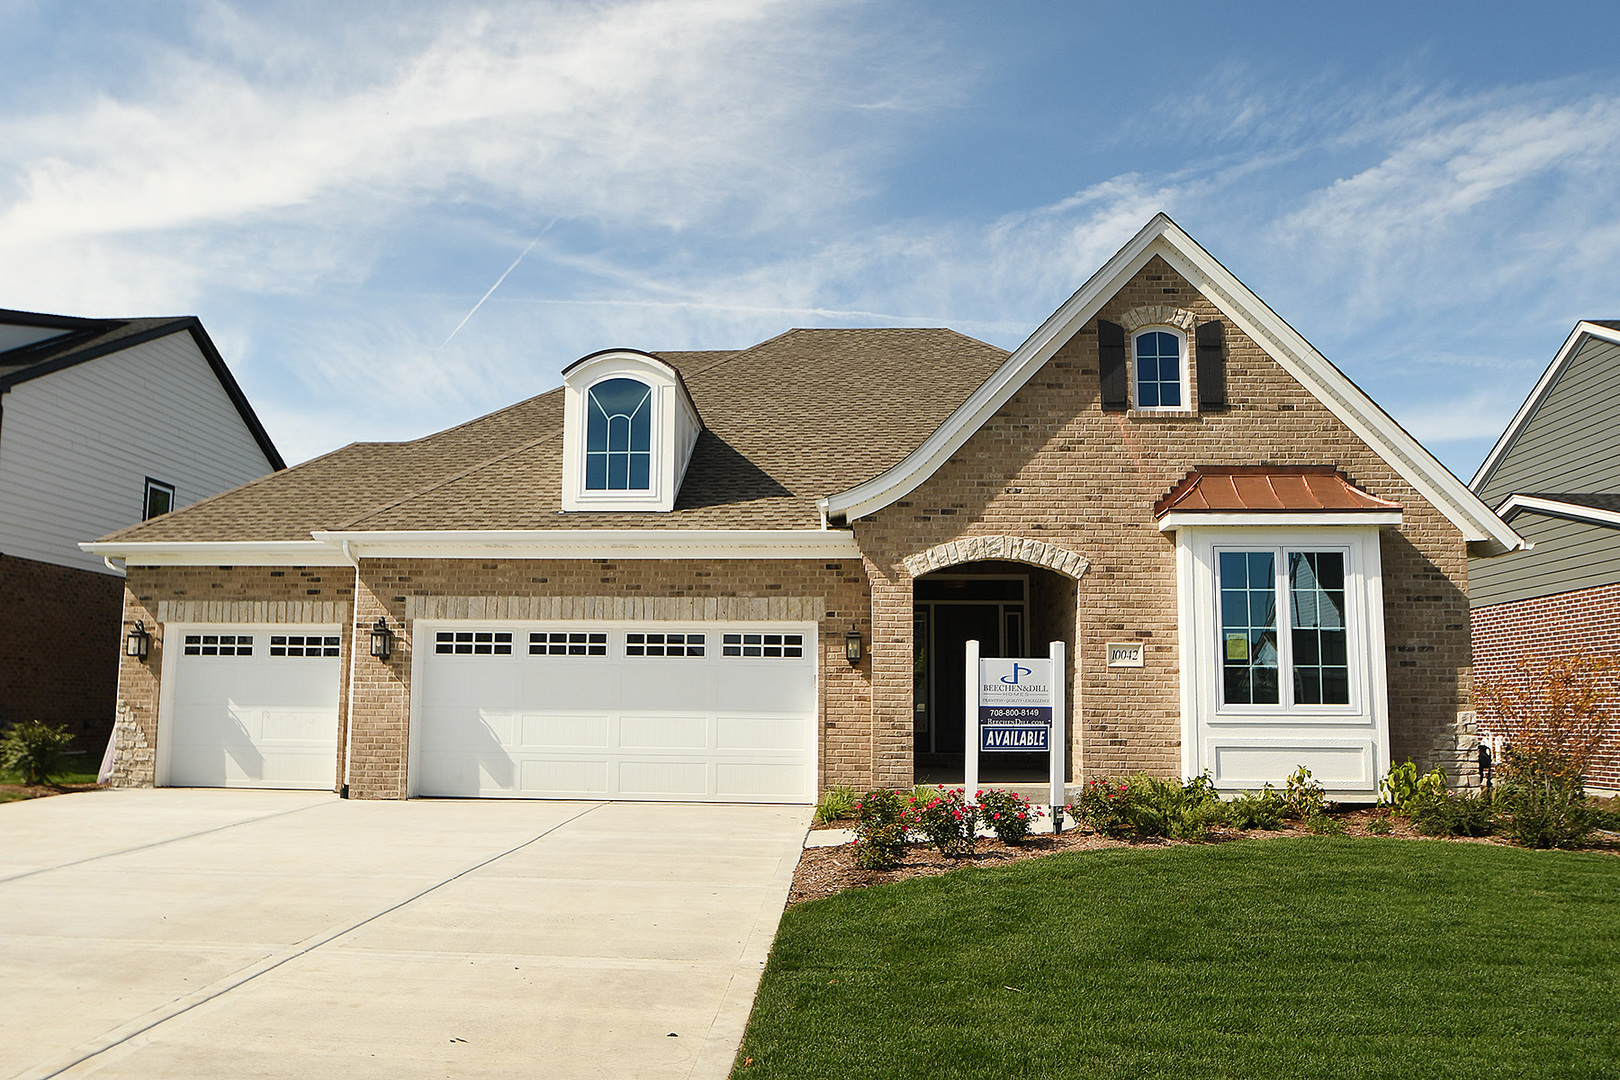 12239 Carroll Drive, Homer Glen in Will County, IL 60491 Home for Sale